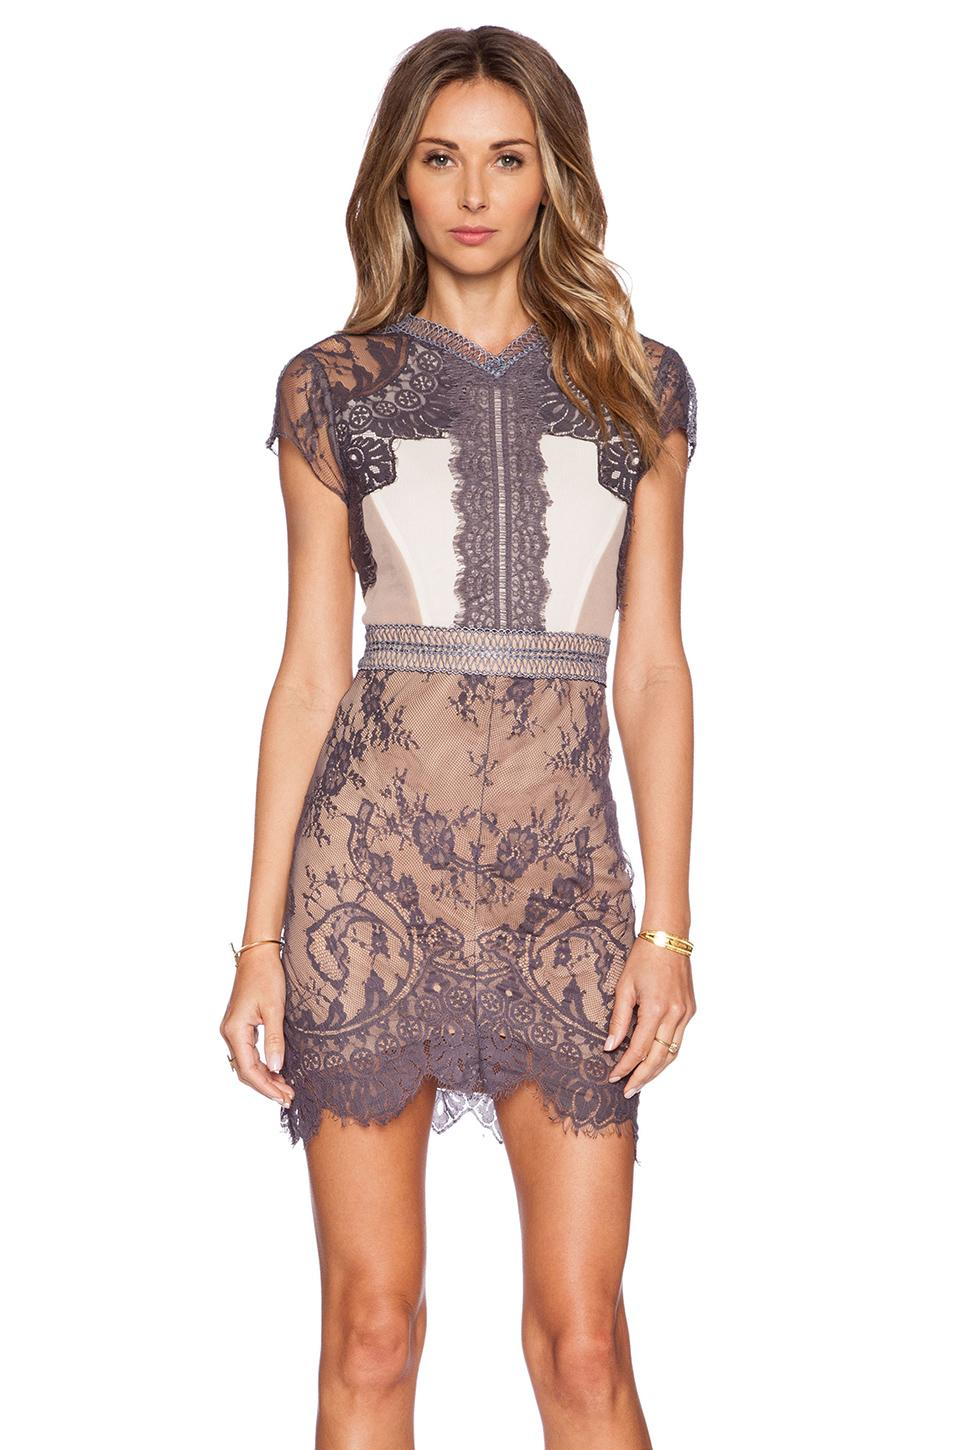 New Vintage Brown Straight Lace Sequence Dress Sexy Women Casual Short-Sleeve Party Mini Dresses Vestidos W850632